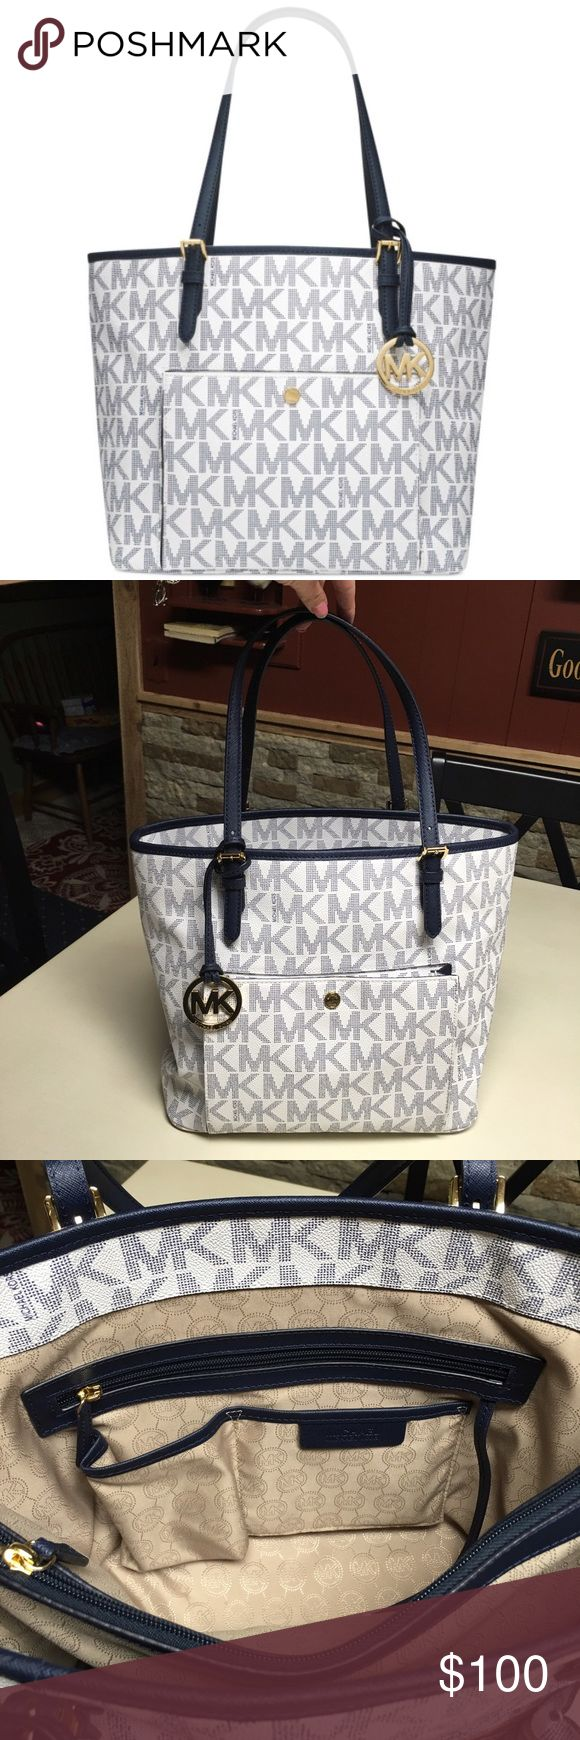 Michael Kors Jet Set Travel Tote New without tags! Michael Kors Jet Set Travel Tote in navy and white! There's a card pocket in the front of the person! No defects, odor, or stains! **AUTHENTIC** Michael Kors Bags Totes